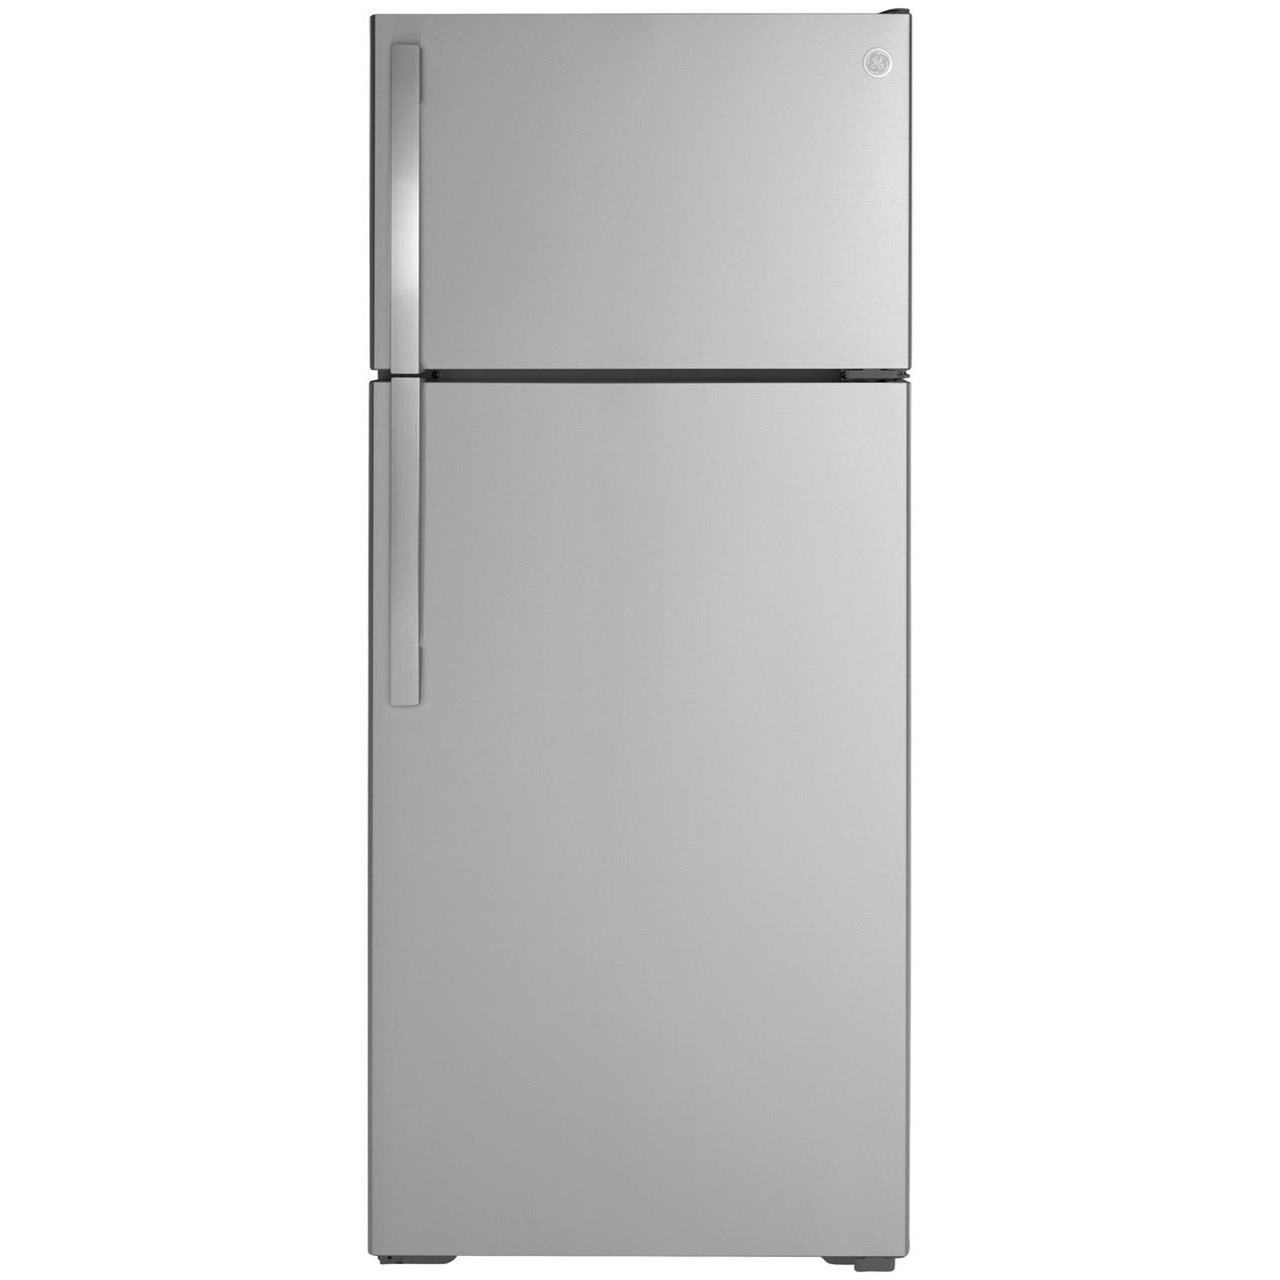 GE Top-Freezer Refrigerators GE® ENERGY STAR® 17.5 Cu. Ft. Top-Freezer Re by GE Appliances at Furniture and ApplianceMart